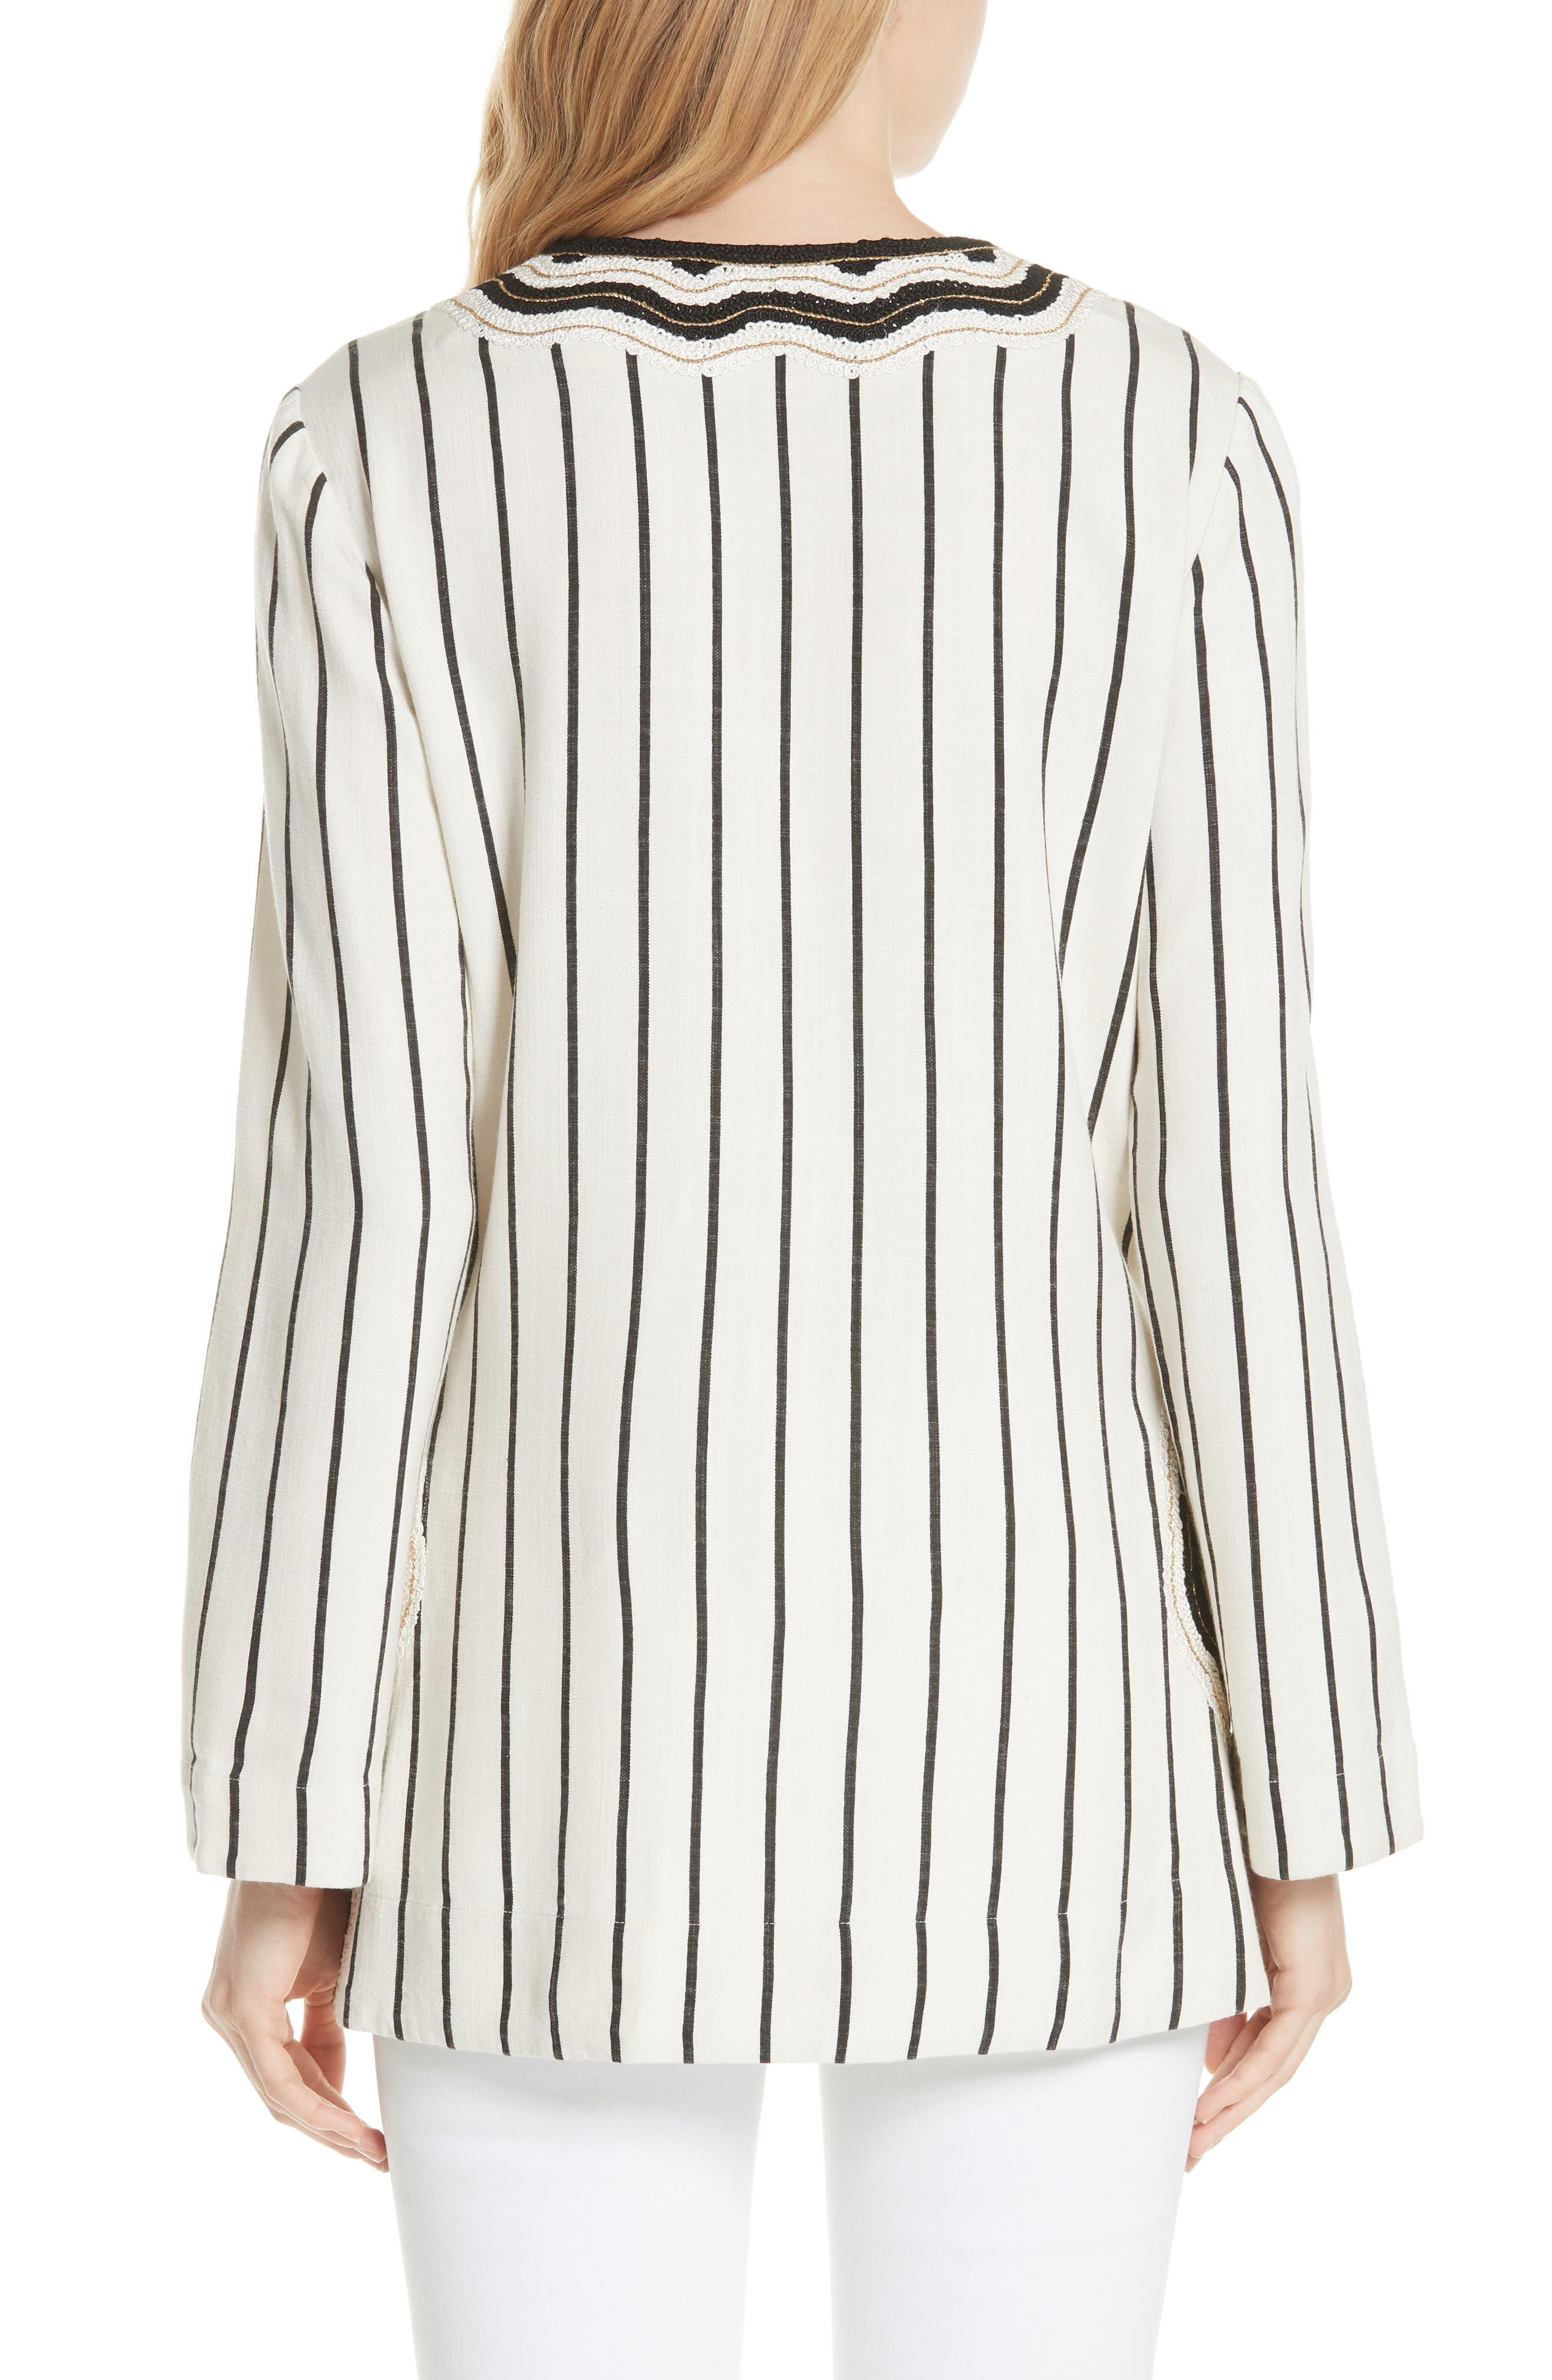 Tory Embellished Stripe Tunic,                             Alternate thumbnail 2, color,                             New Ivory/ Black